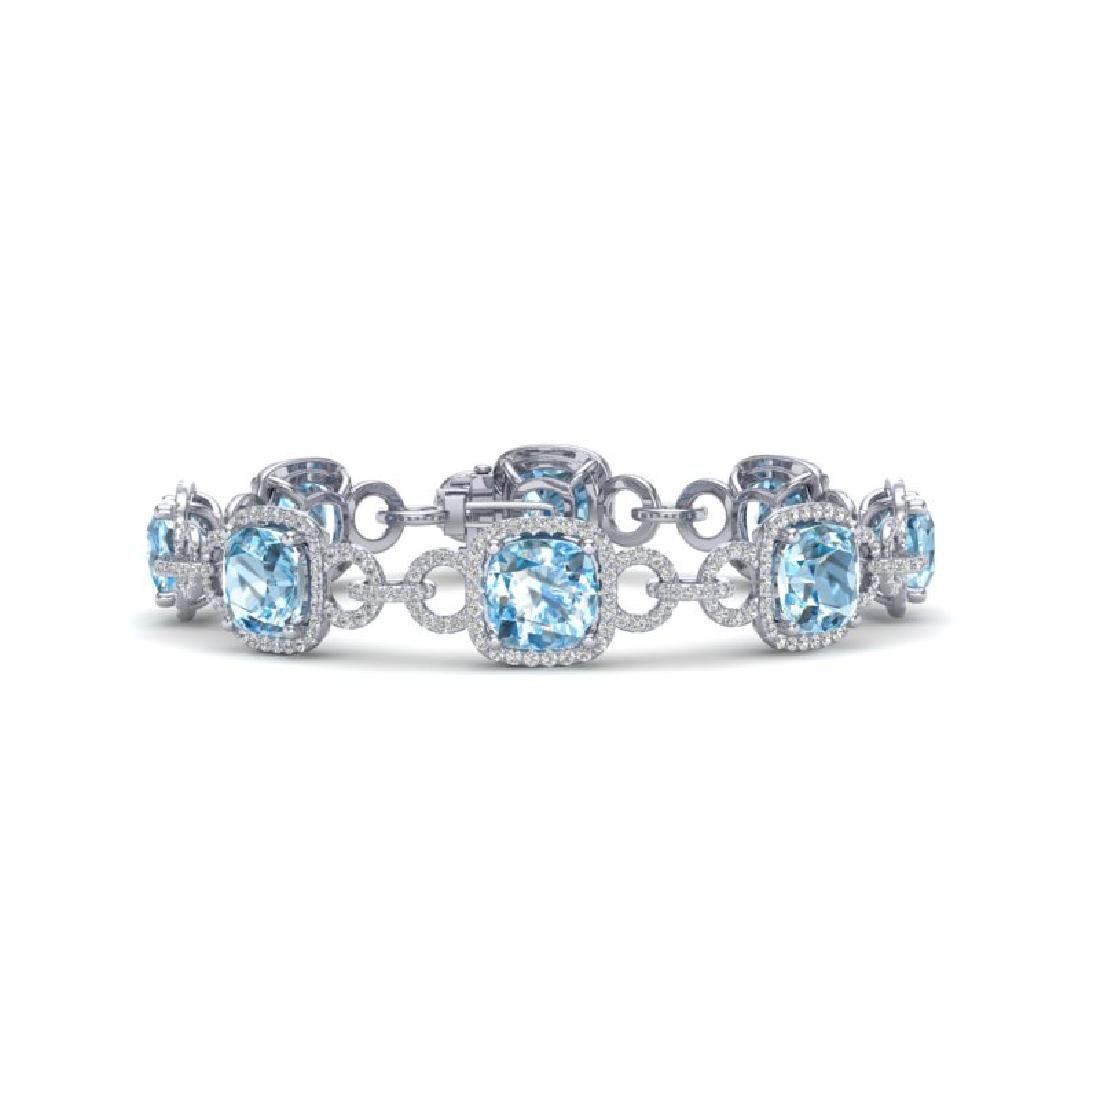 30 CTW Topaz & VS/SI Diamond Bracelet 14K White Gold